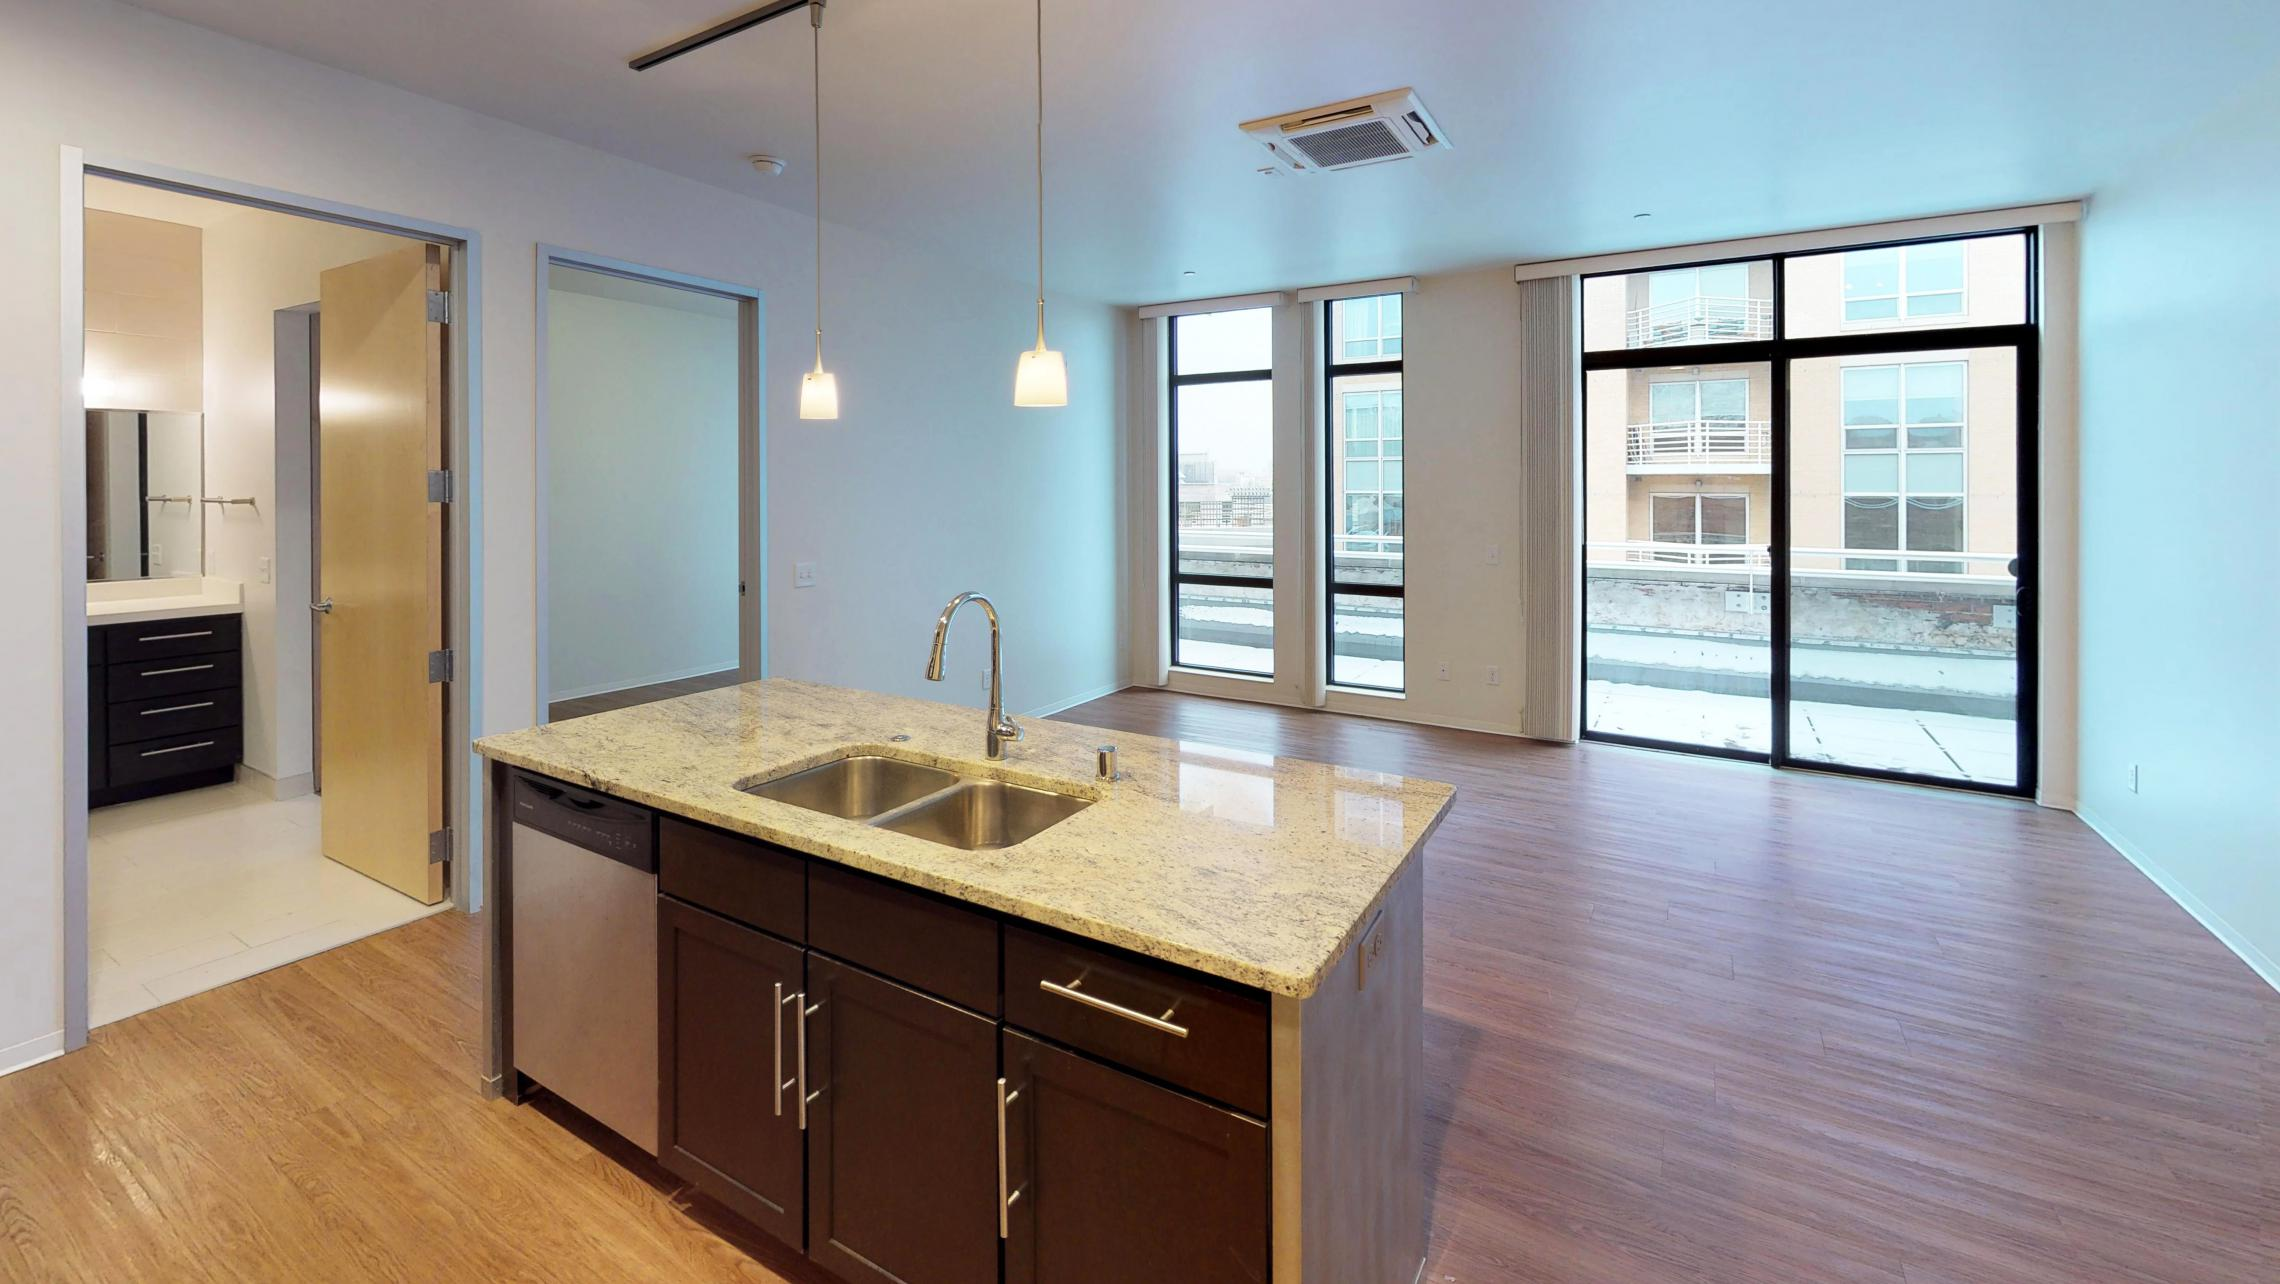 Capitol-Hill-500-Kitchen-living room-one bedroom-lakeview-balcony-penthouse-luxury.jpg